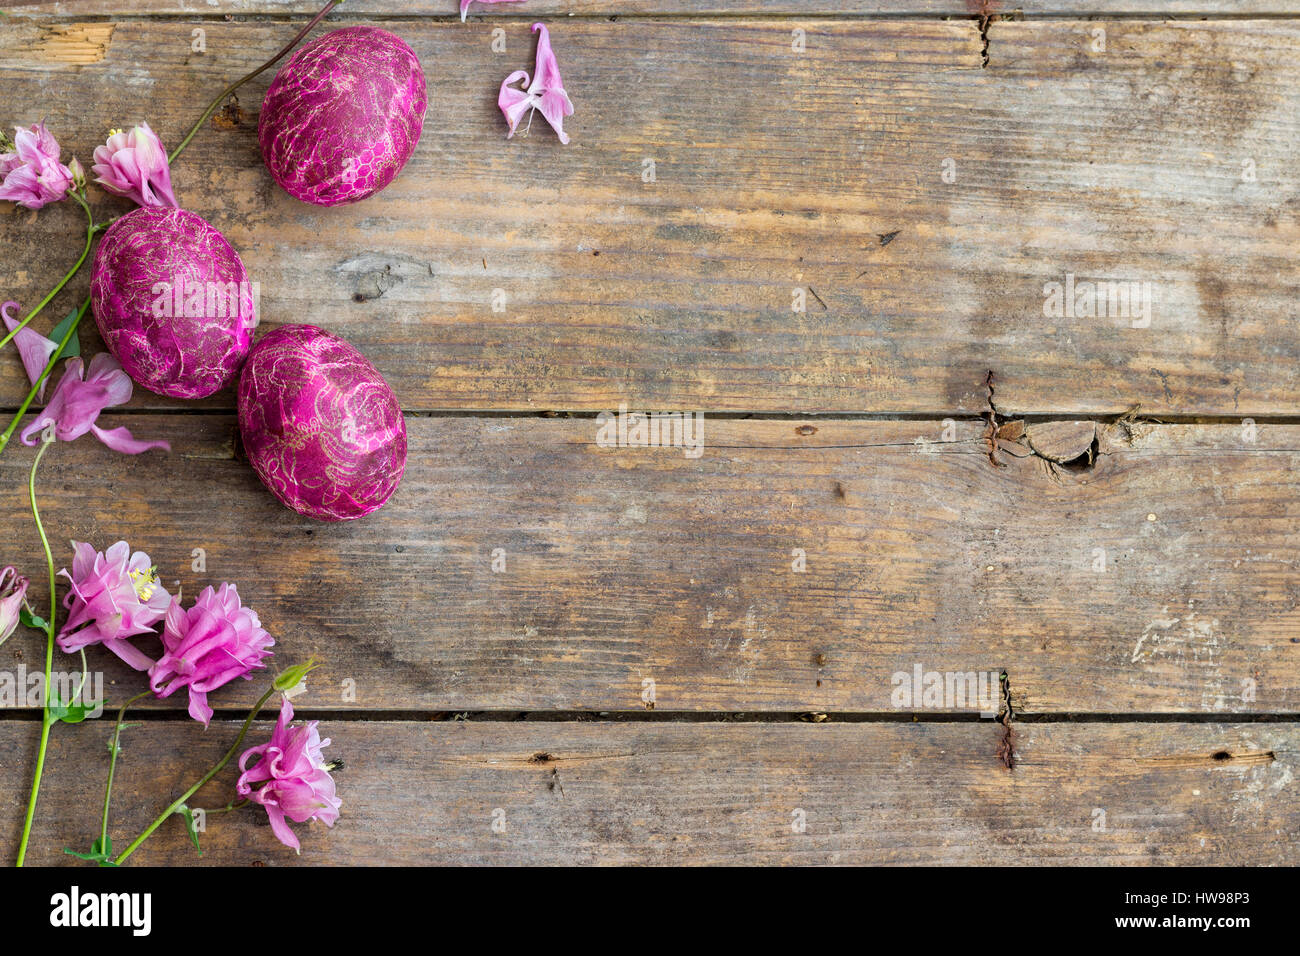 Decoupage decorated Easter eggs on a wooden table Stock Photo